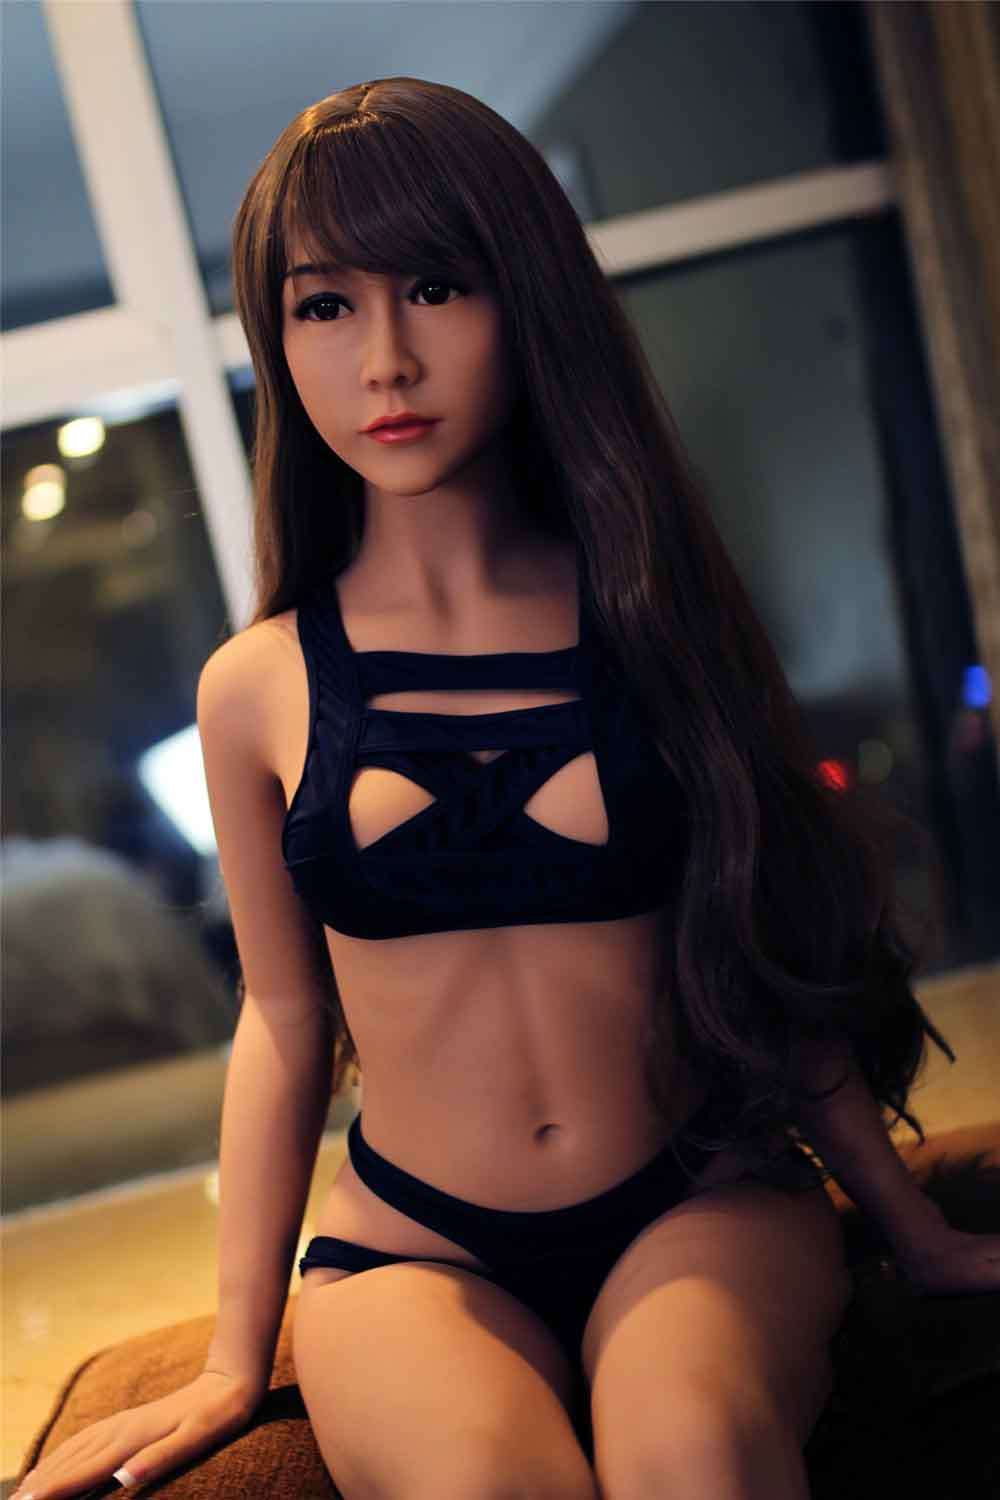 sex-doll-sitting-on-the-table